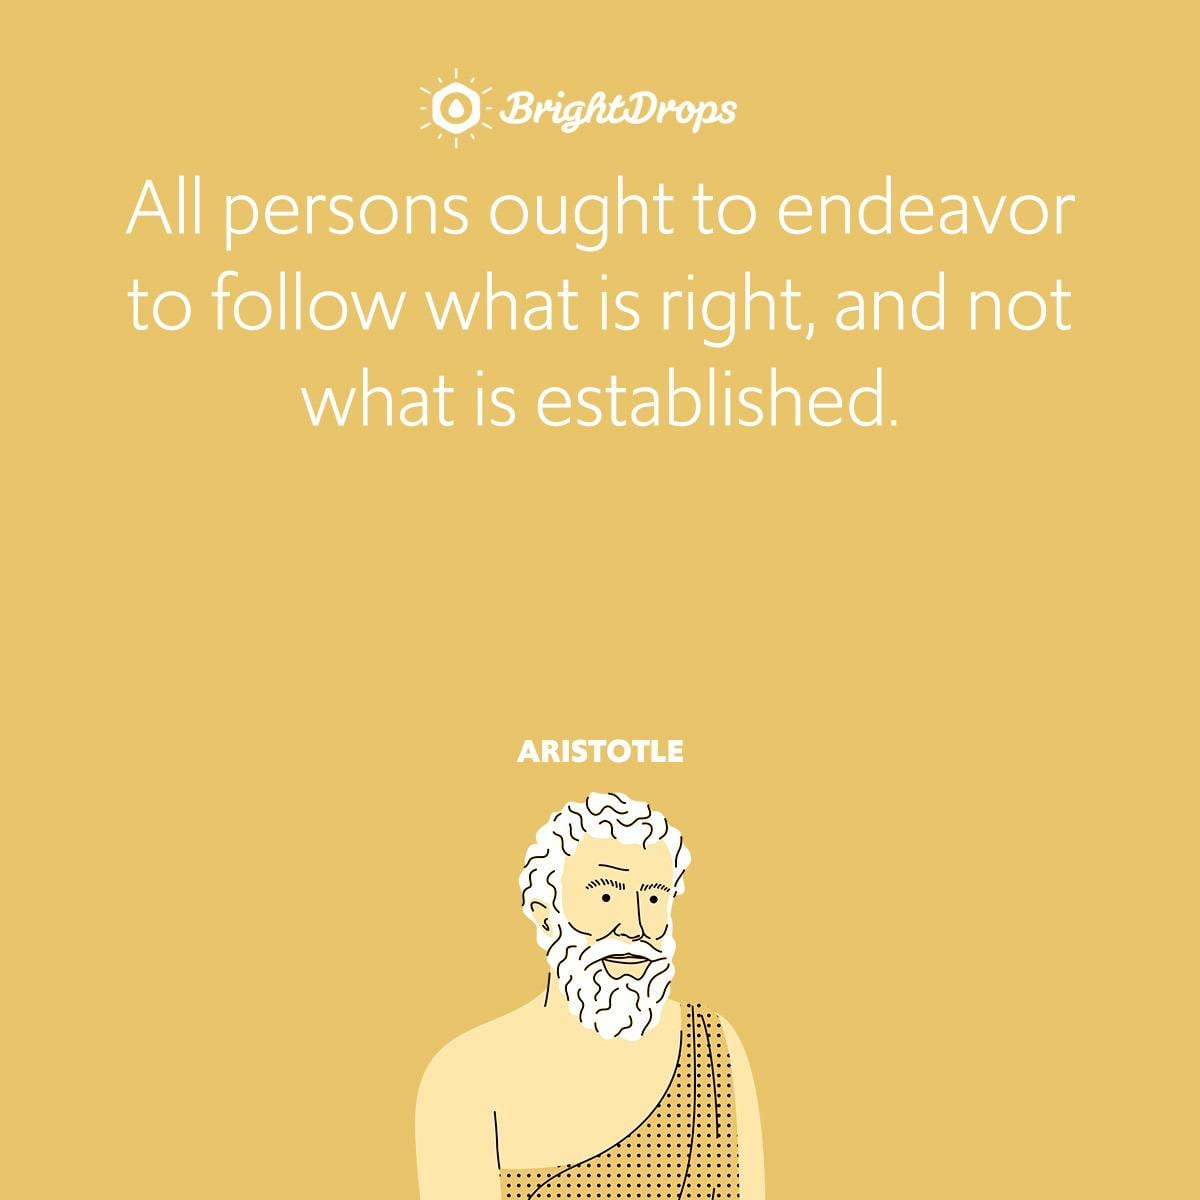 All persons ought to endeavor to follow what is right, and not what is established.